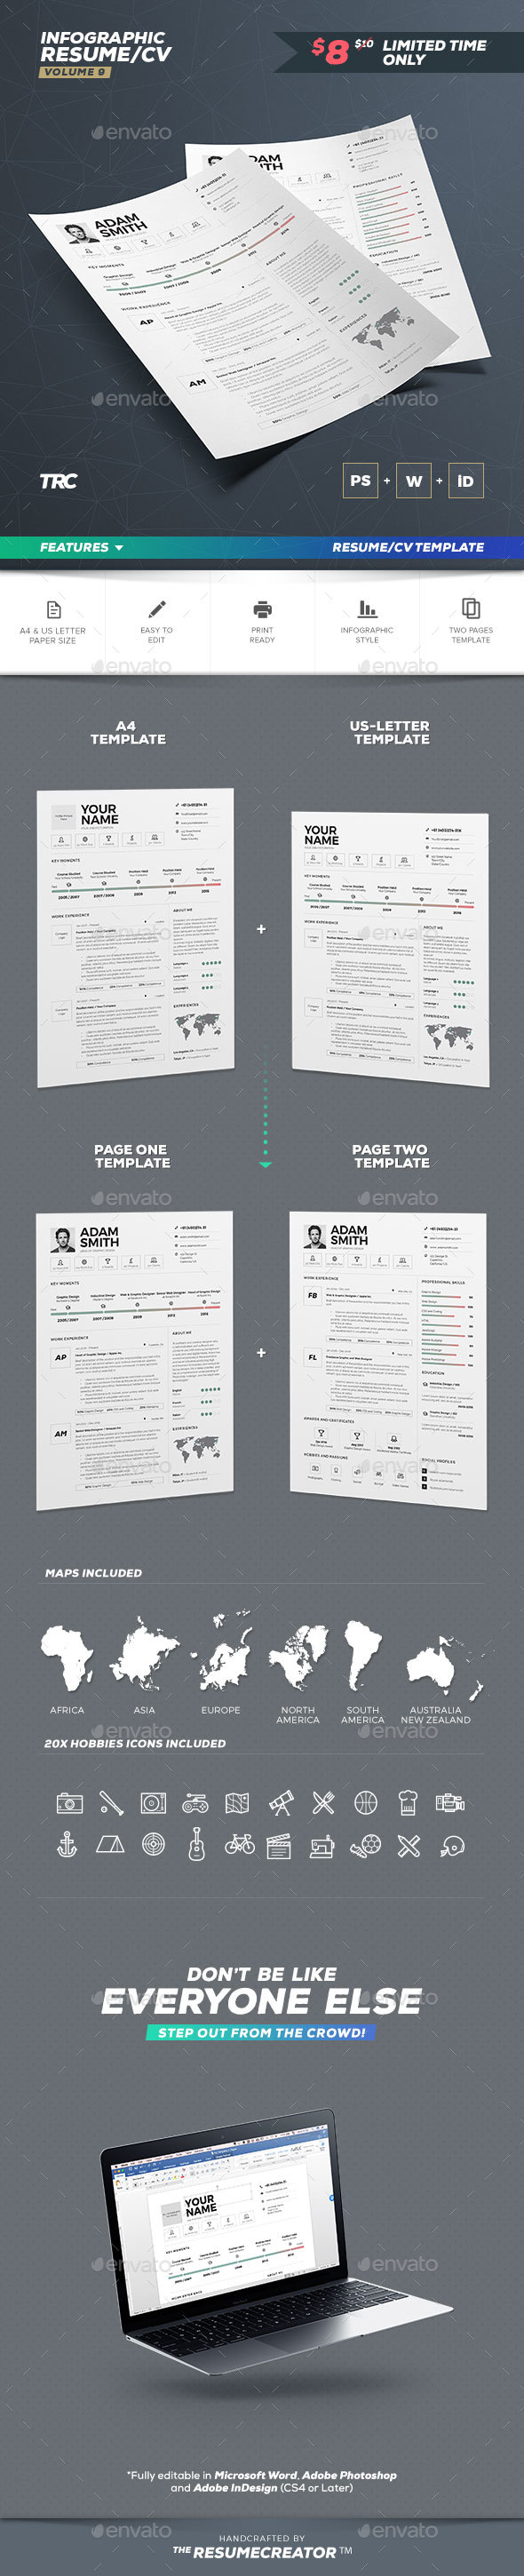 Infographic Resume/Cv Template Volume 9